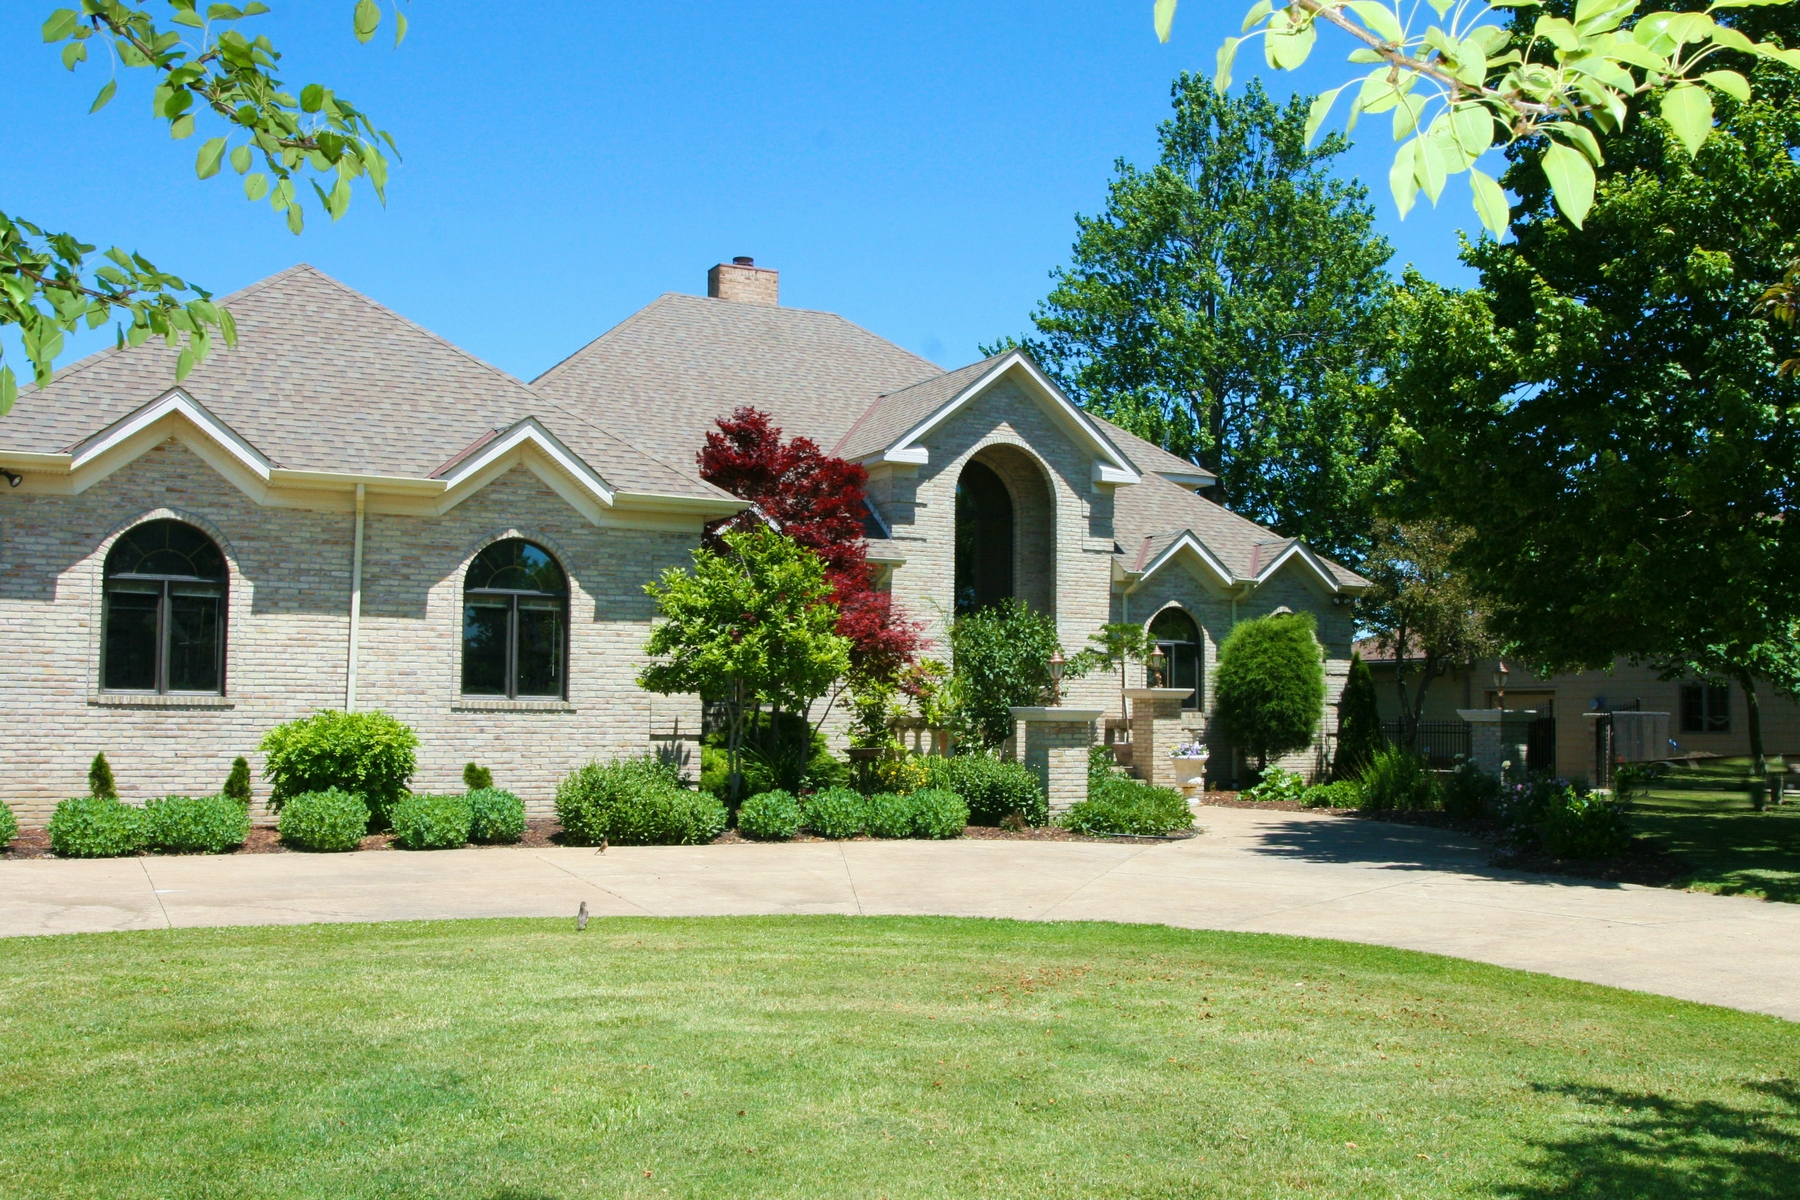 Single Family Home for Sale at 1613 Lands End, Huron, Ohio 1613 Lands End Huron, Ohio 44839 United States